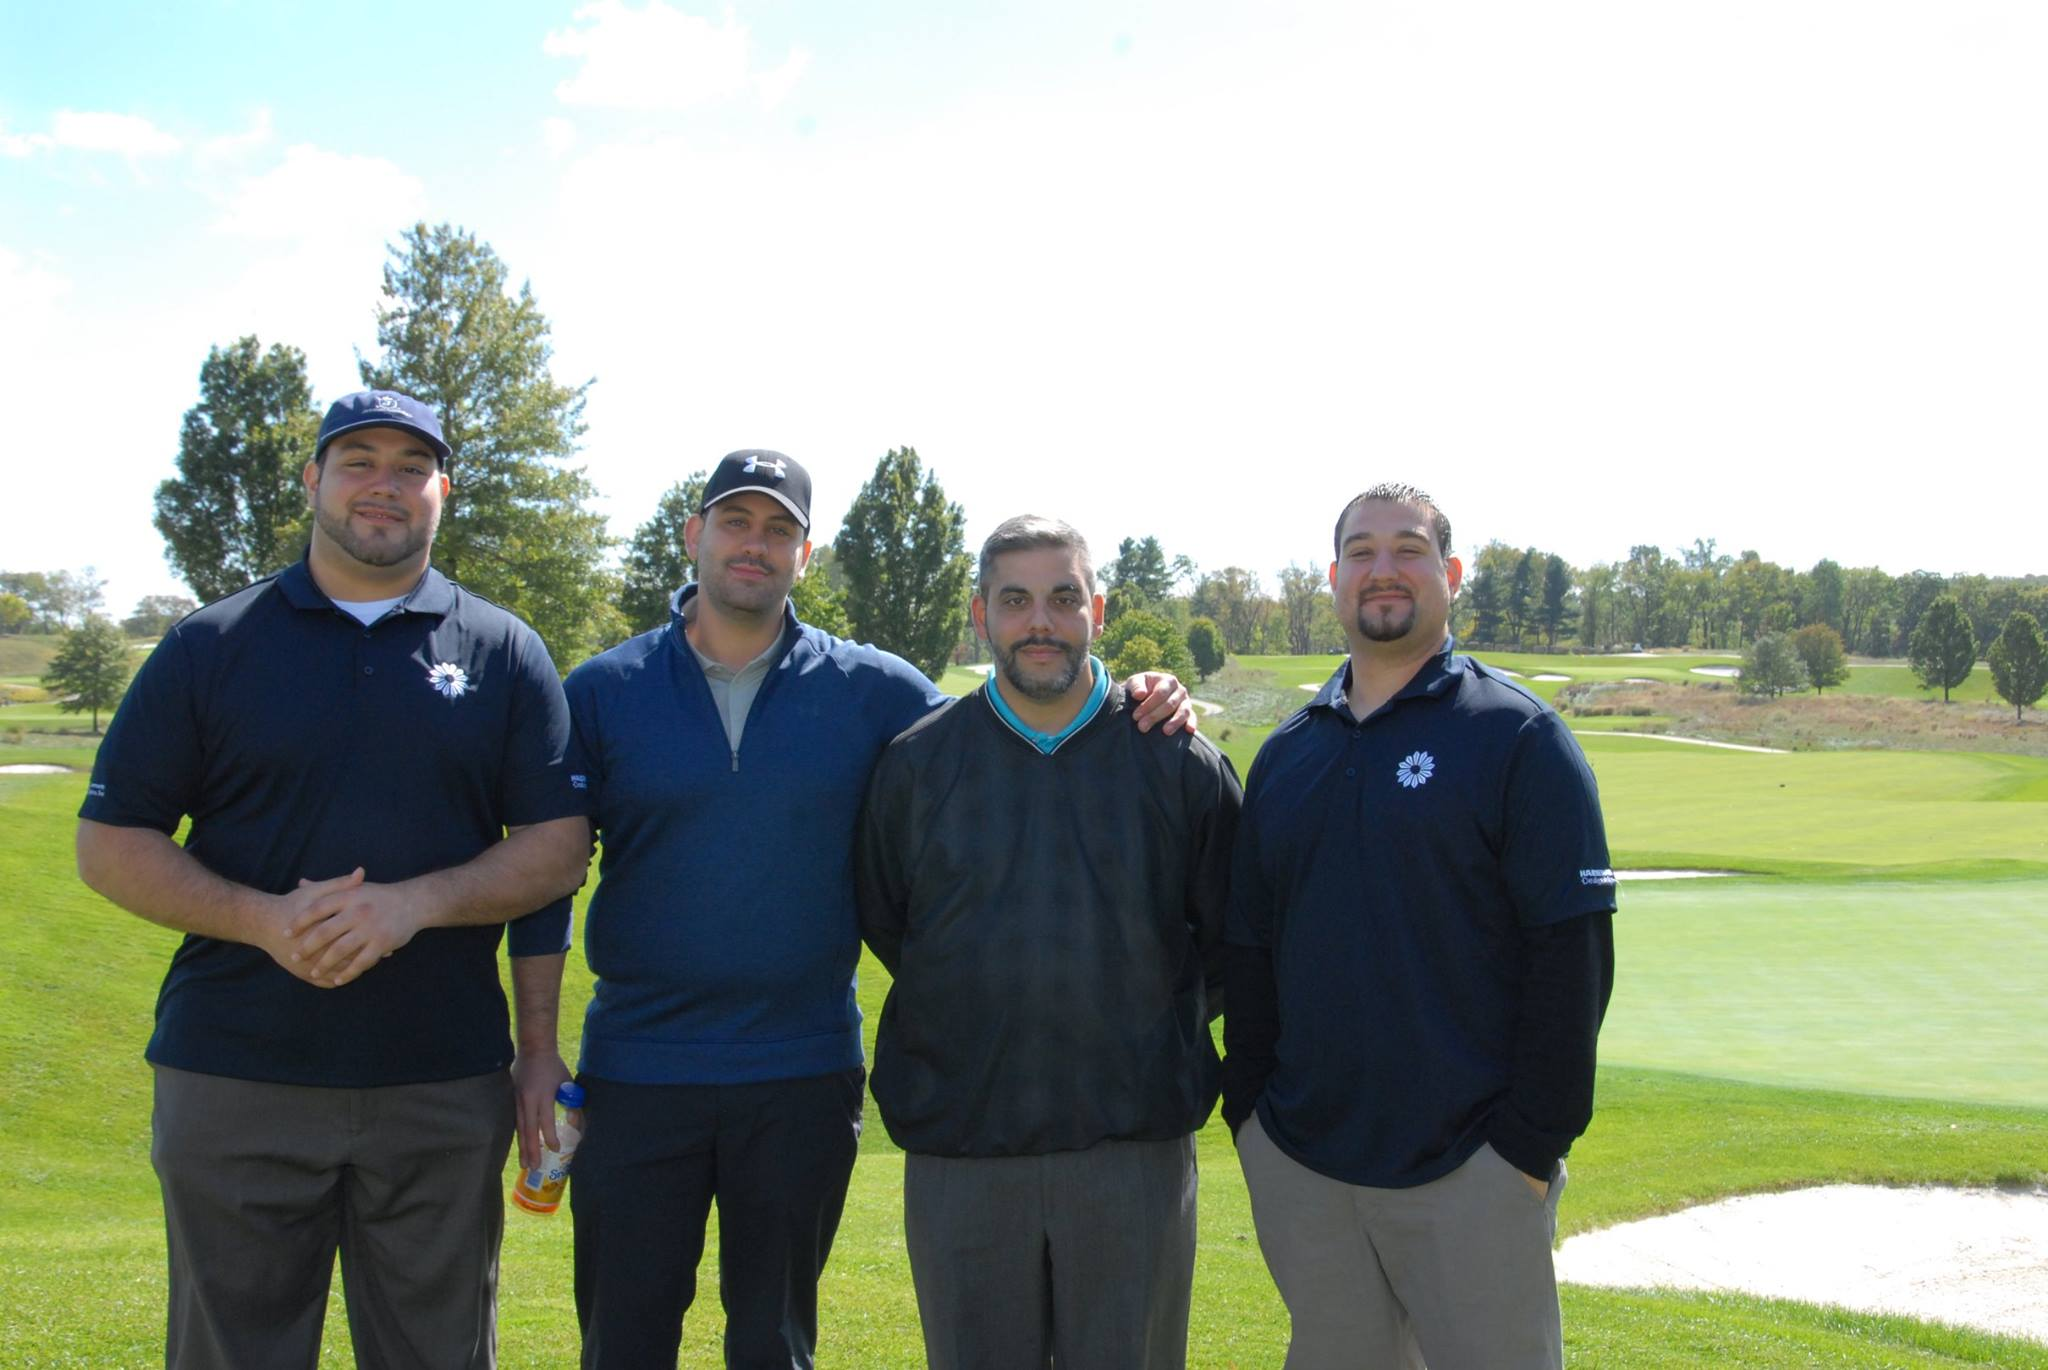 On October 5, 2015, Community Options, a national nonprofit dedicated to providing housing and employment support to people with intellectual and developmental disabilities, hosted its annual iMatter Golf Classic at Jericho National Golf Club in New Hope, PA